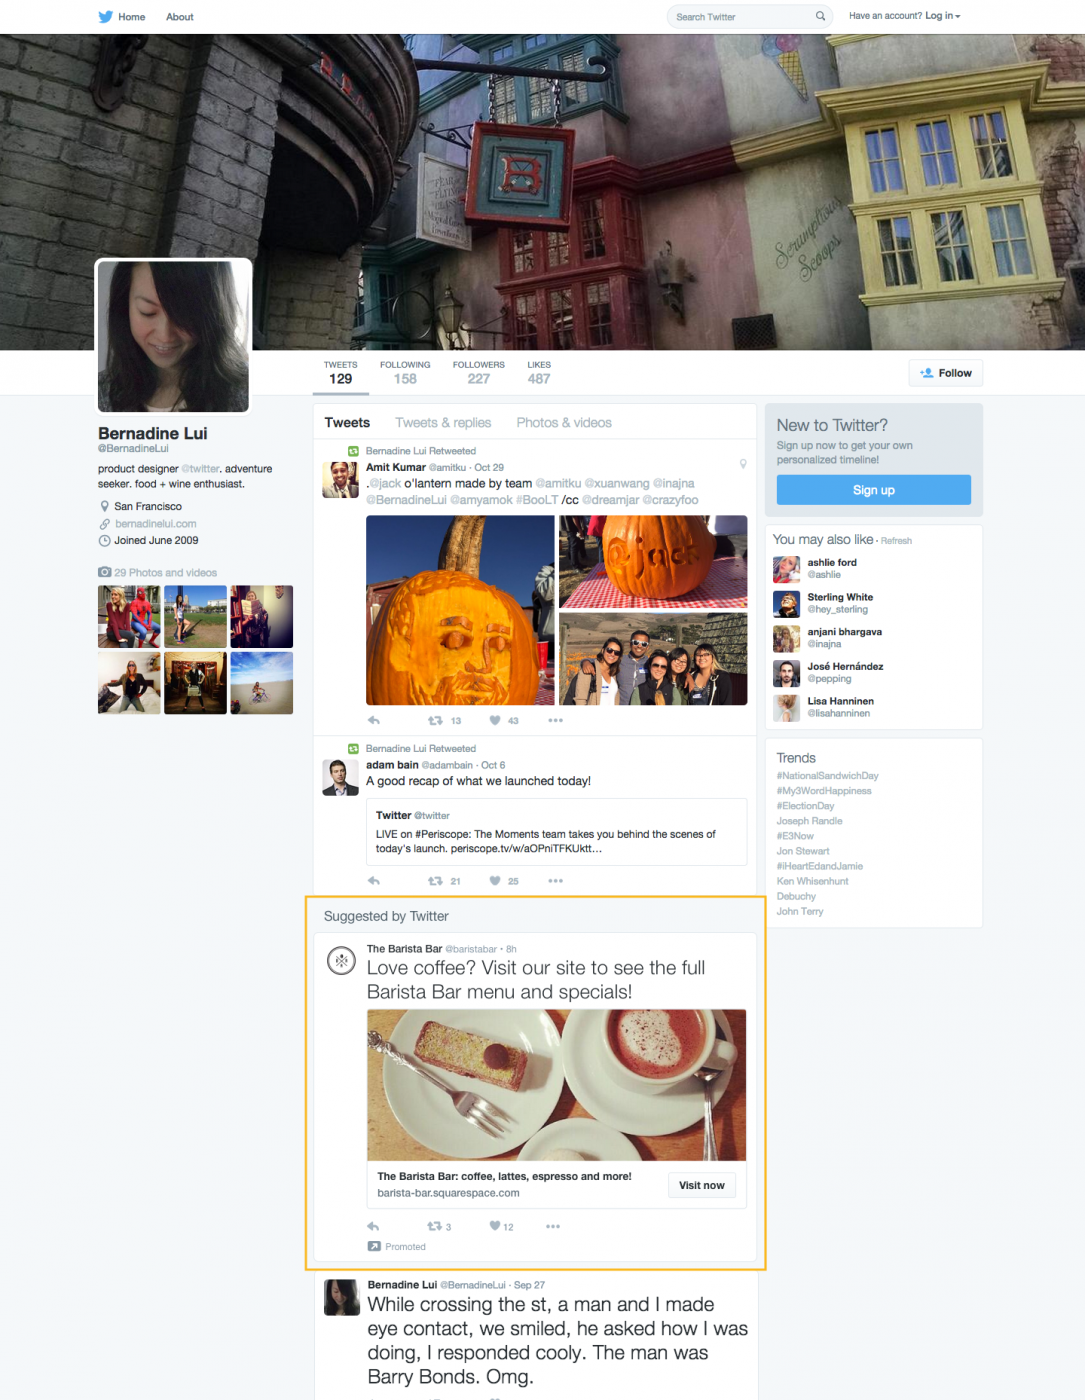 Twitter Targets Logged-out Users with Promoted Tweets